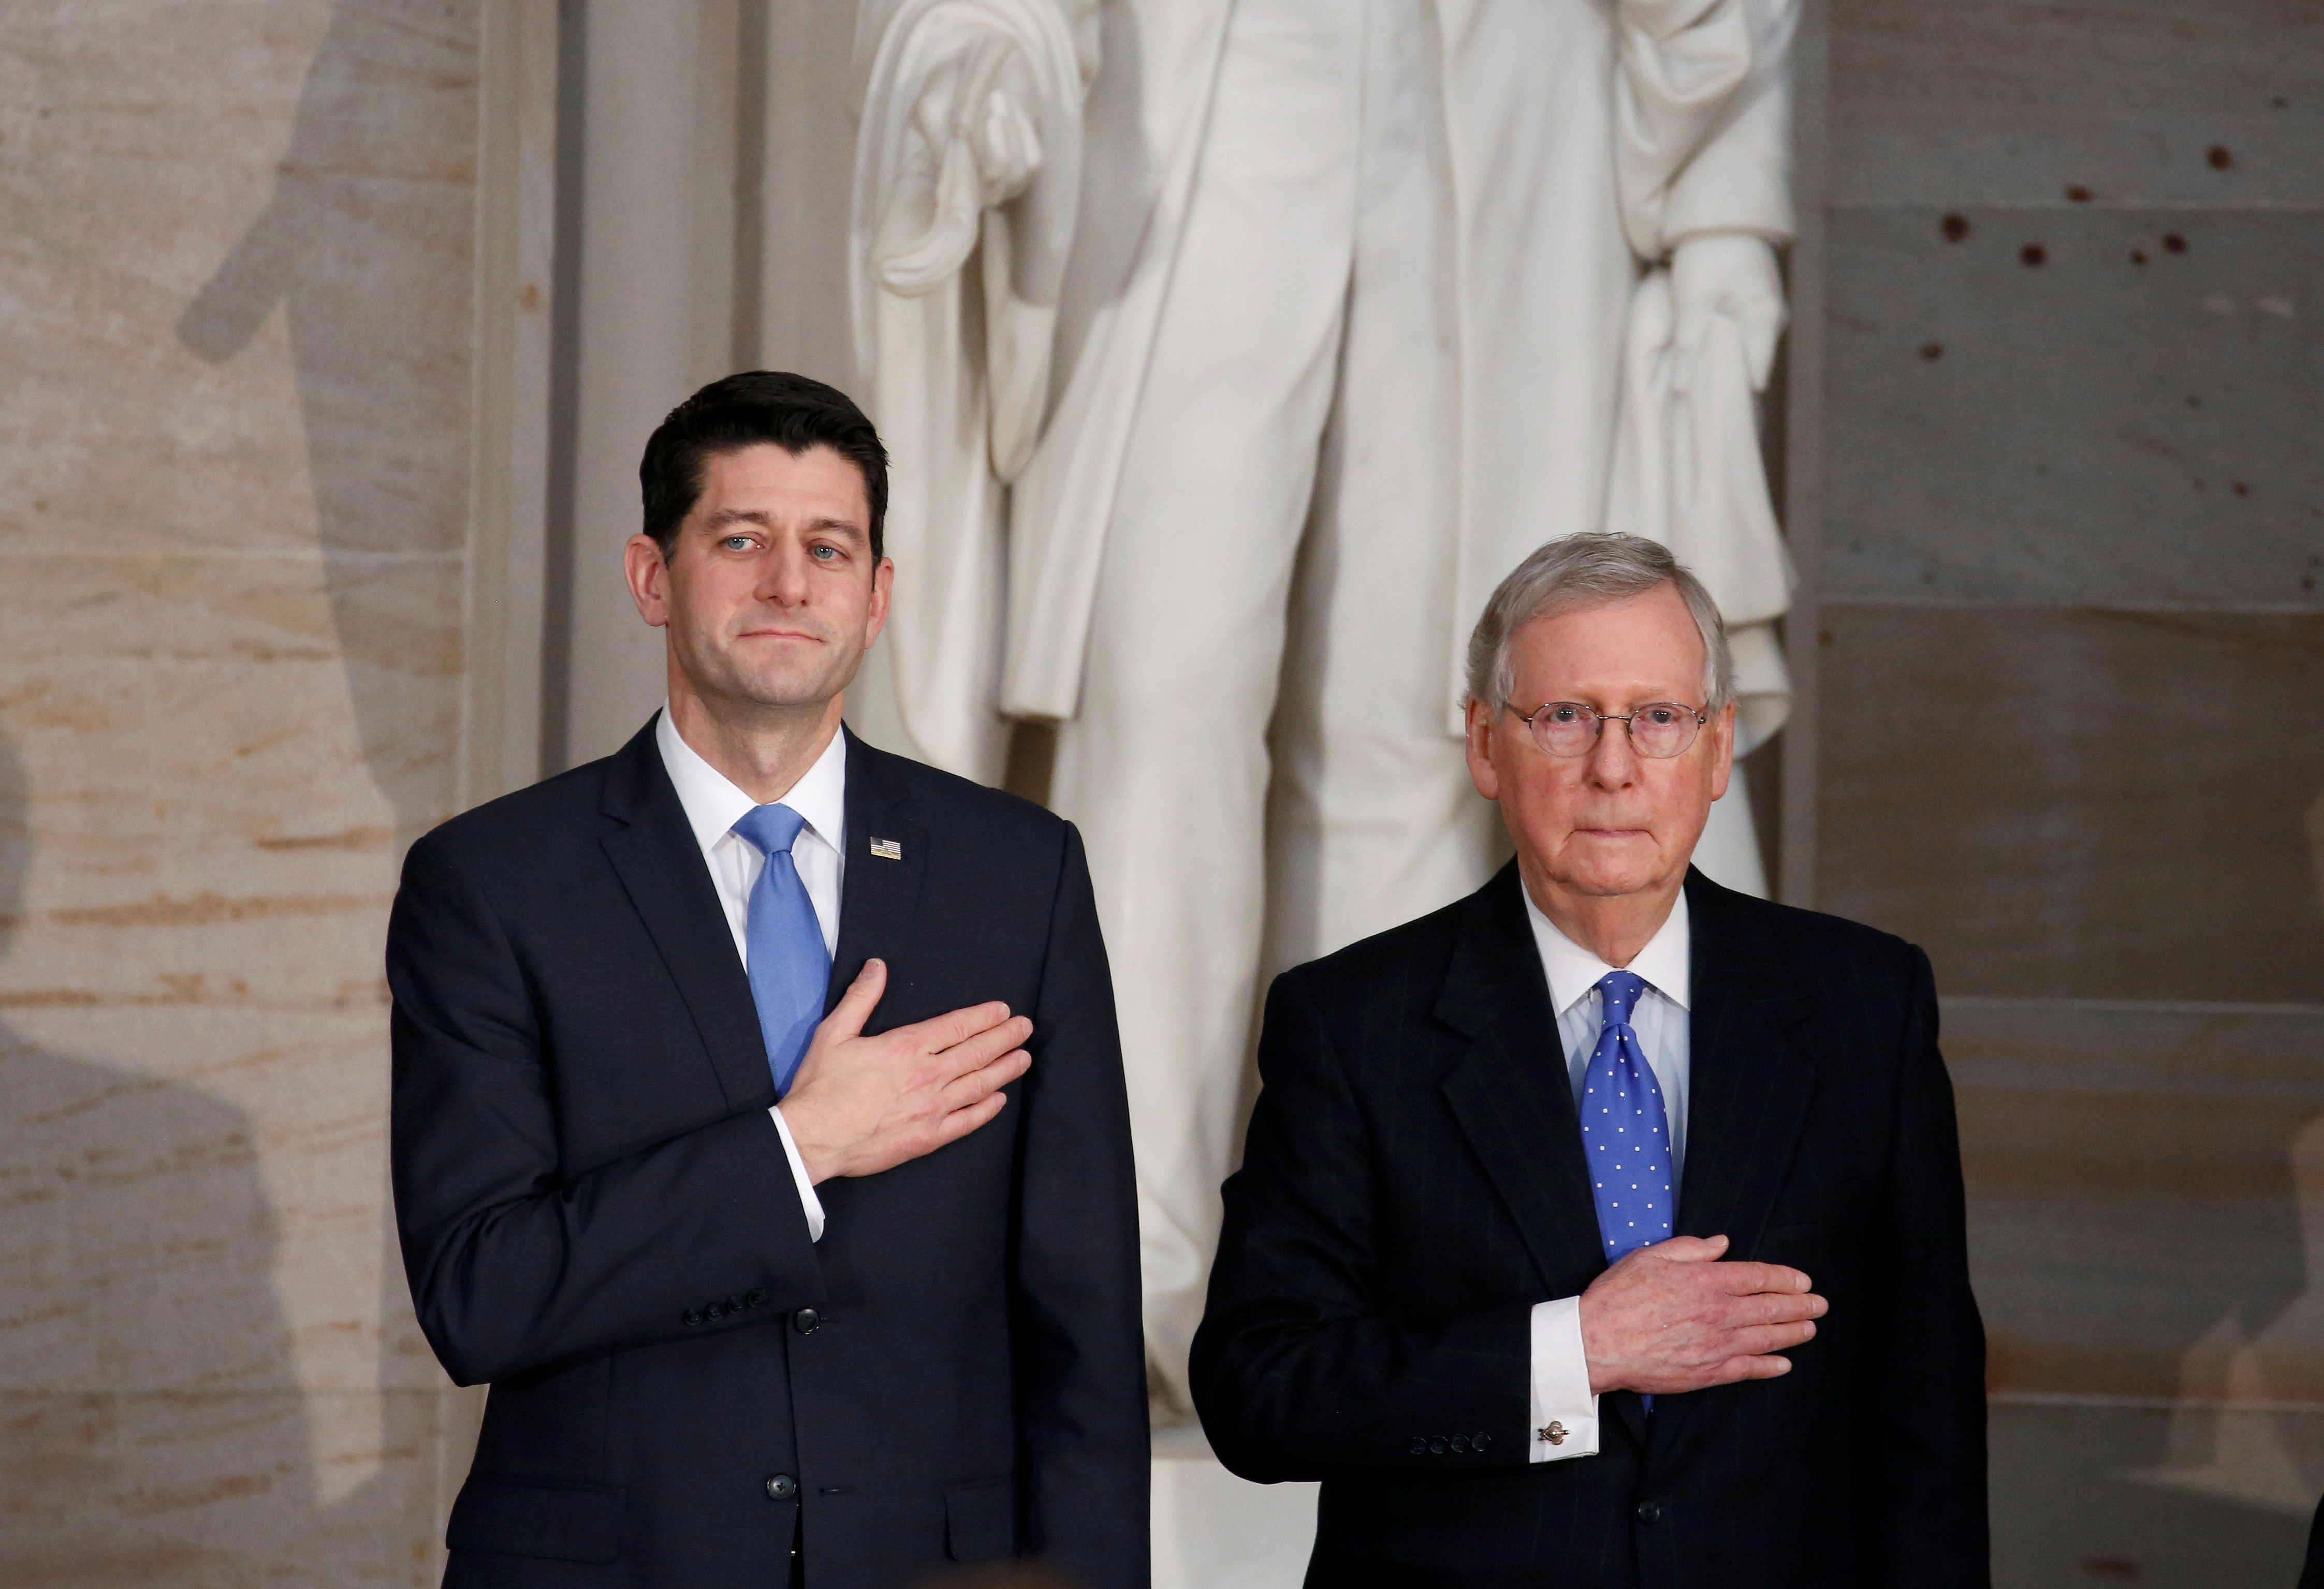 Speaker of the House Paul Ryan (R-WI) and Senate Majority Leader Mitch McConnell (R-KY) stand during a Congressional Gold Medal ceremony in Washington